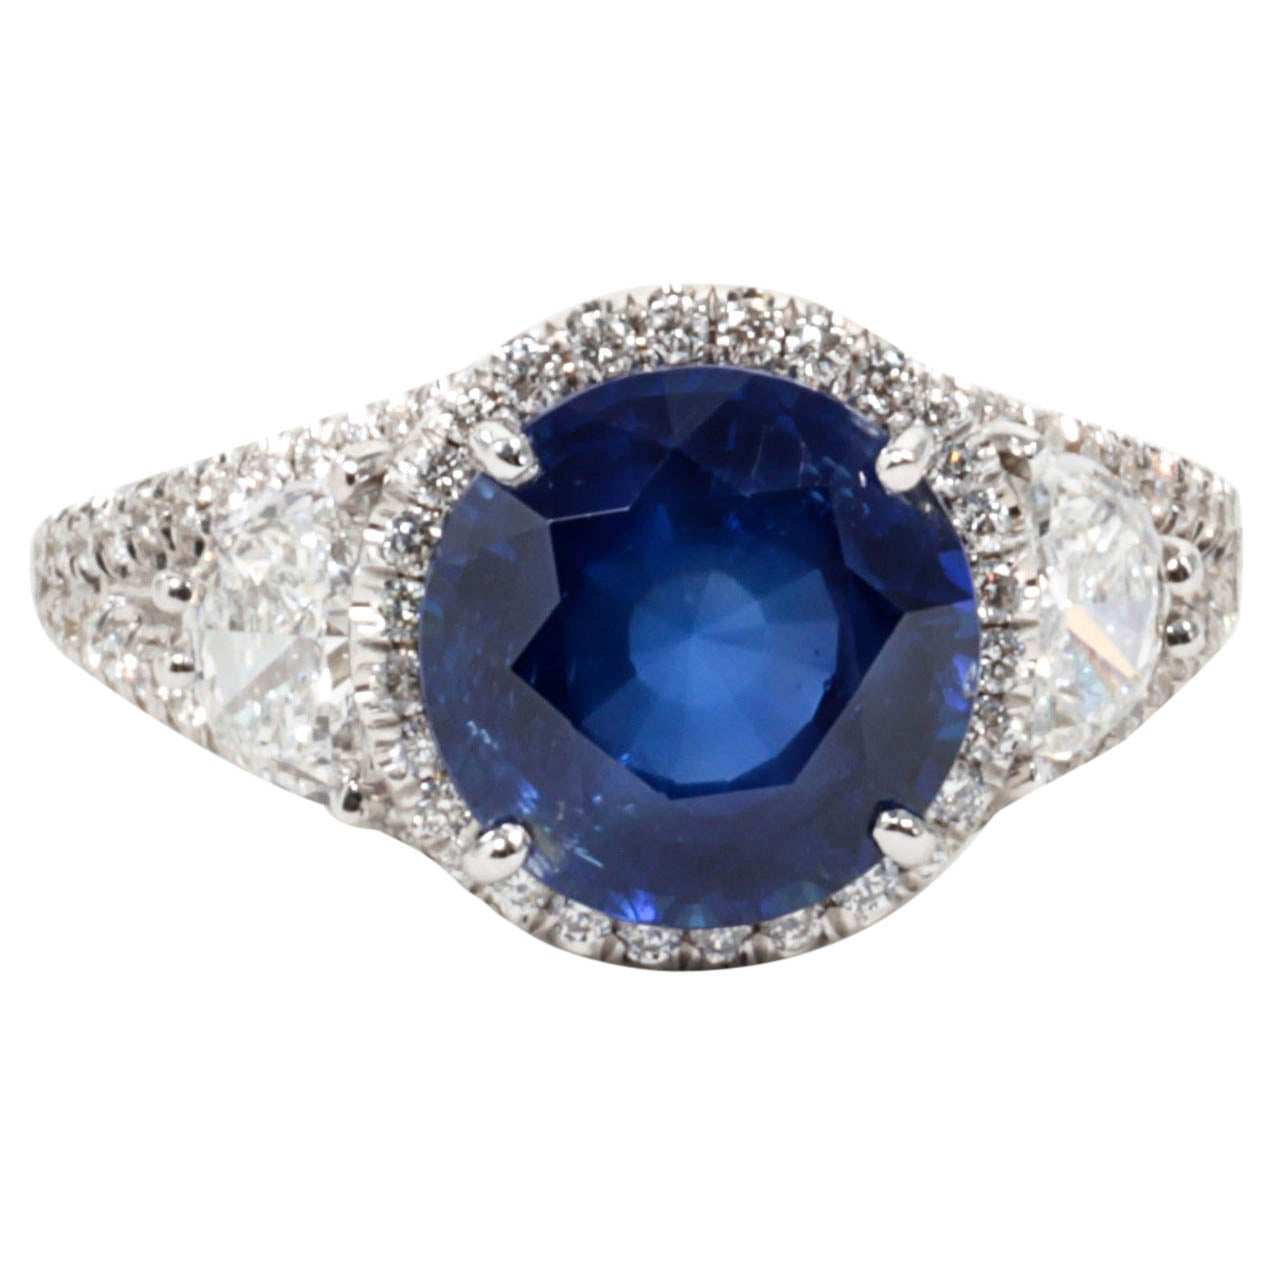 inspired colour amp unsual rare image sapphire dress shoe ring rings horse design diamond and